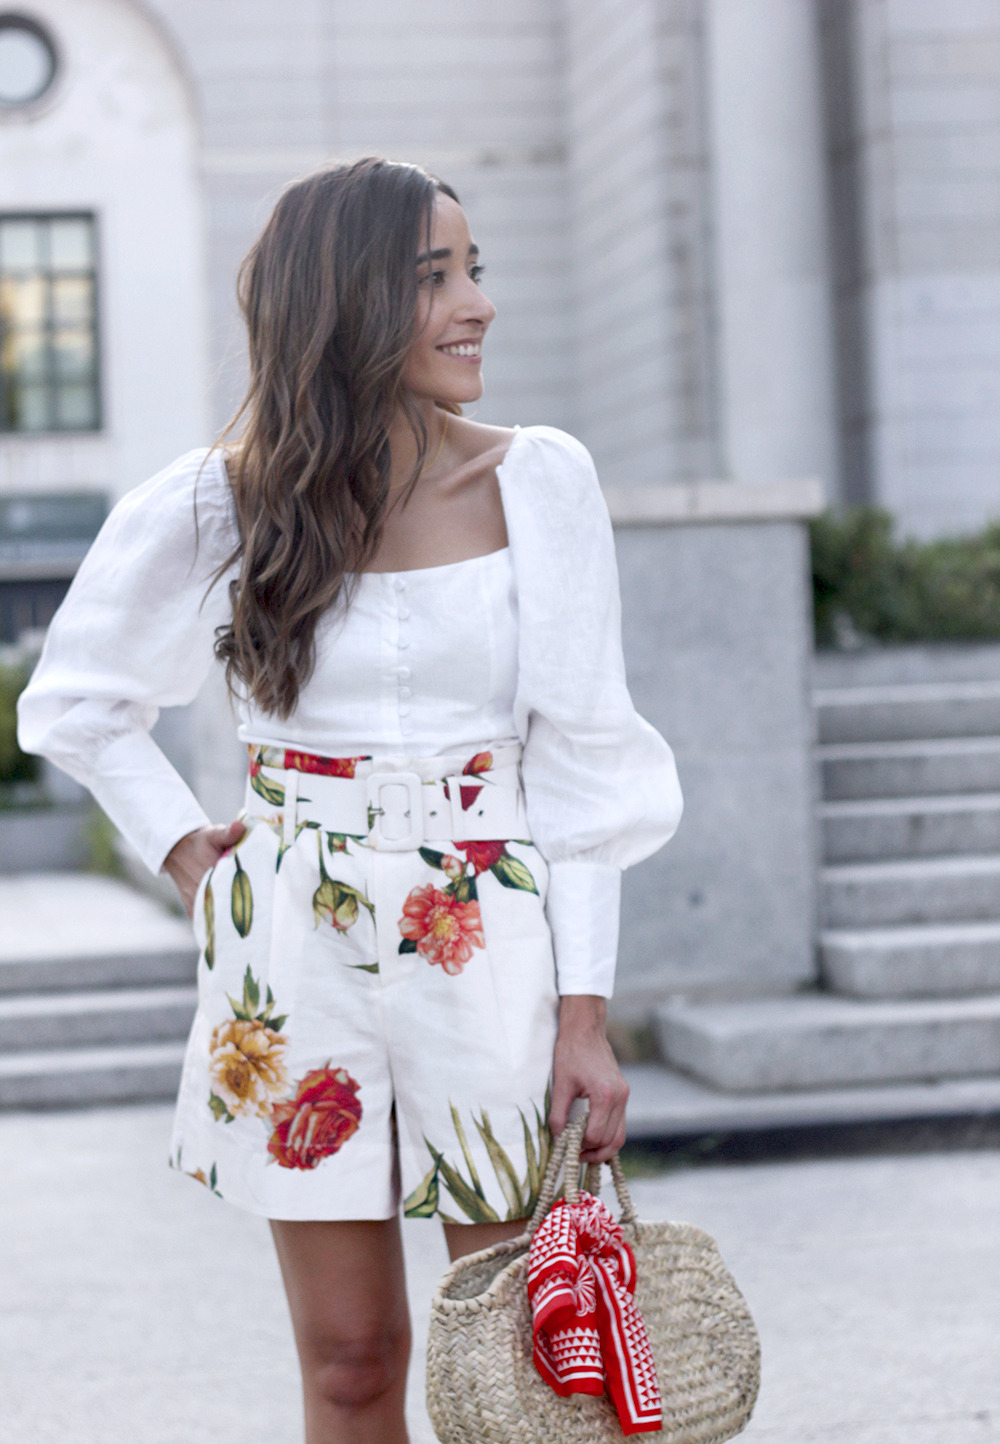 floral print shorts linnen top suede heels street style summer outfit 20191